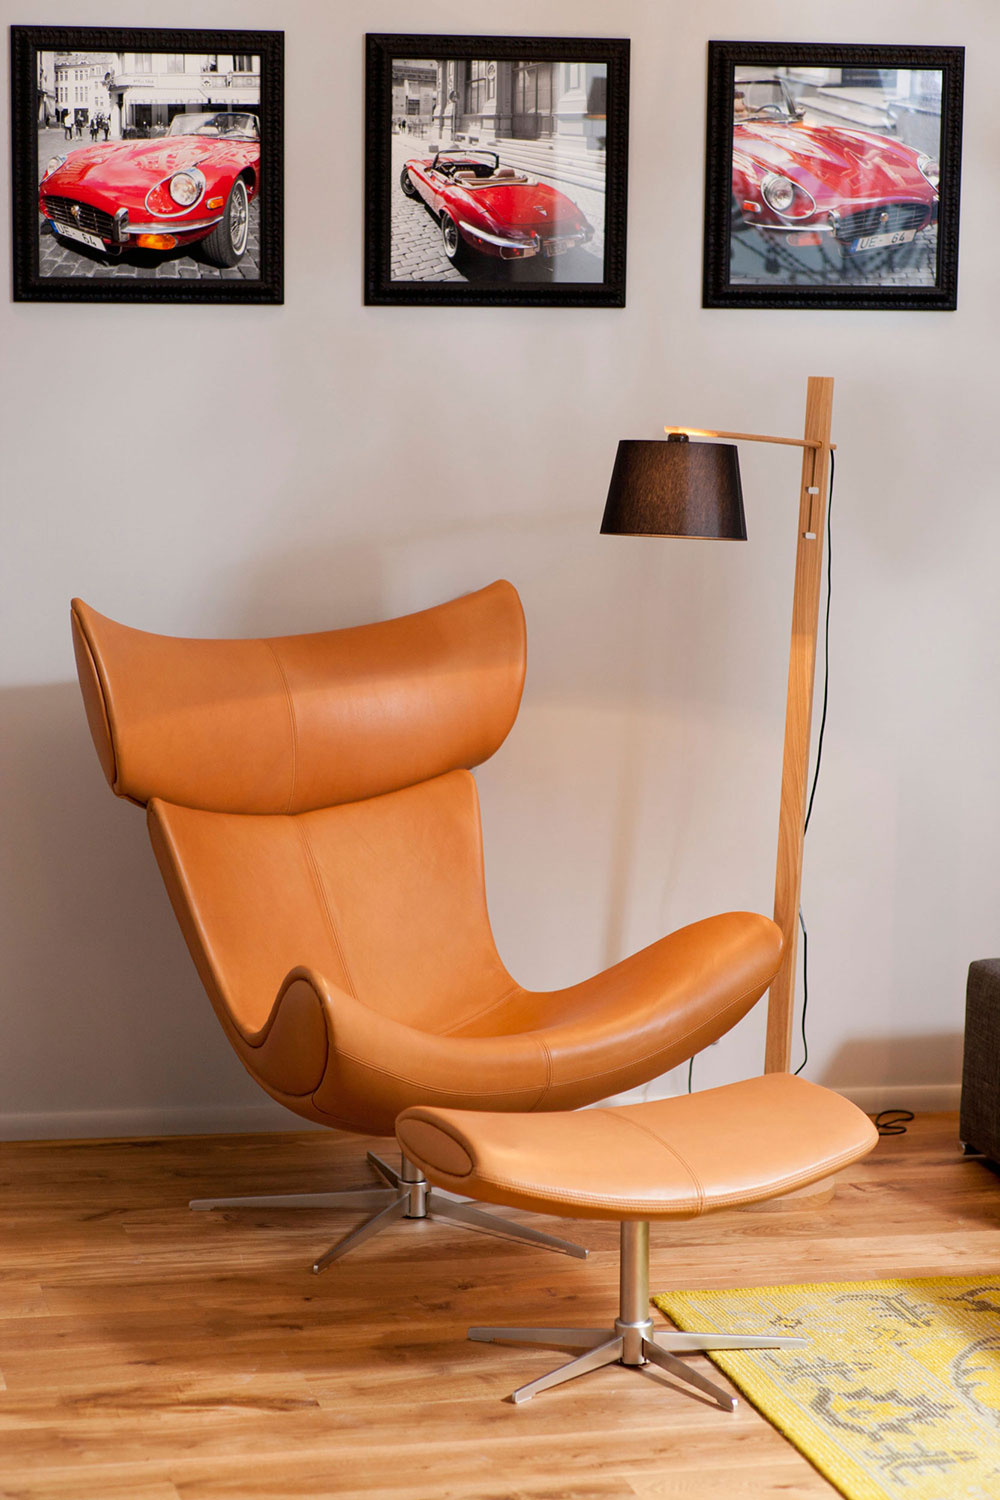 Chair, Footstool, Studio Apartment in Riga by Eric Carlson